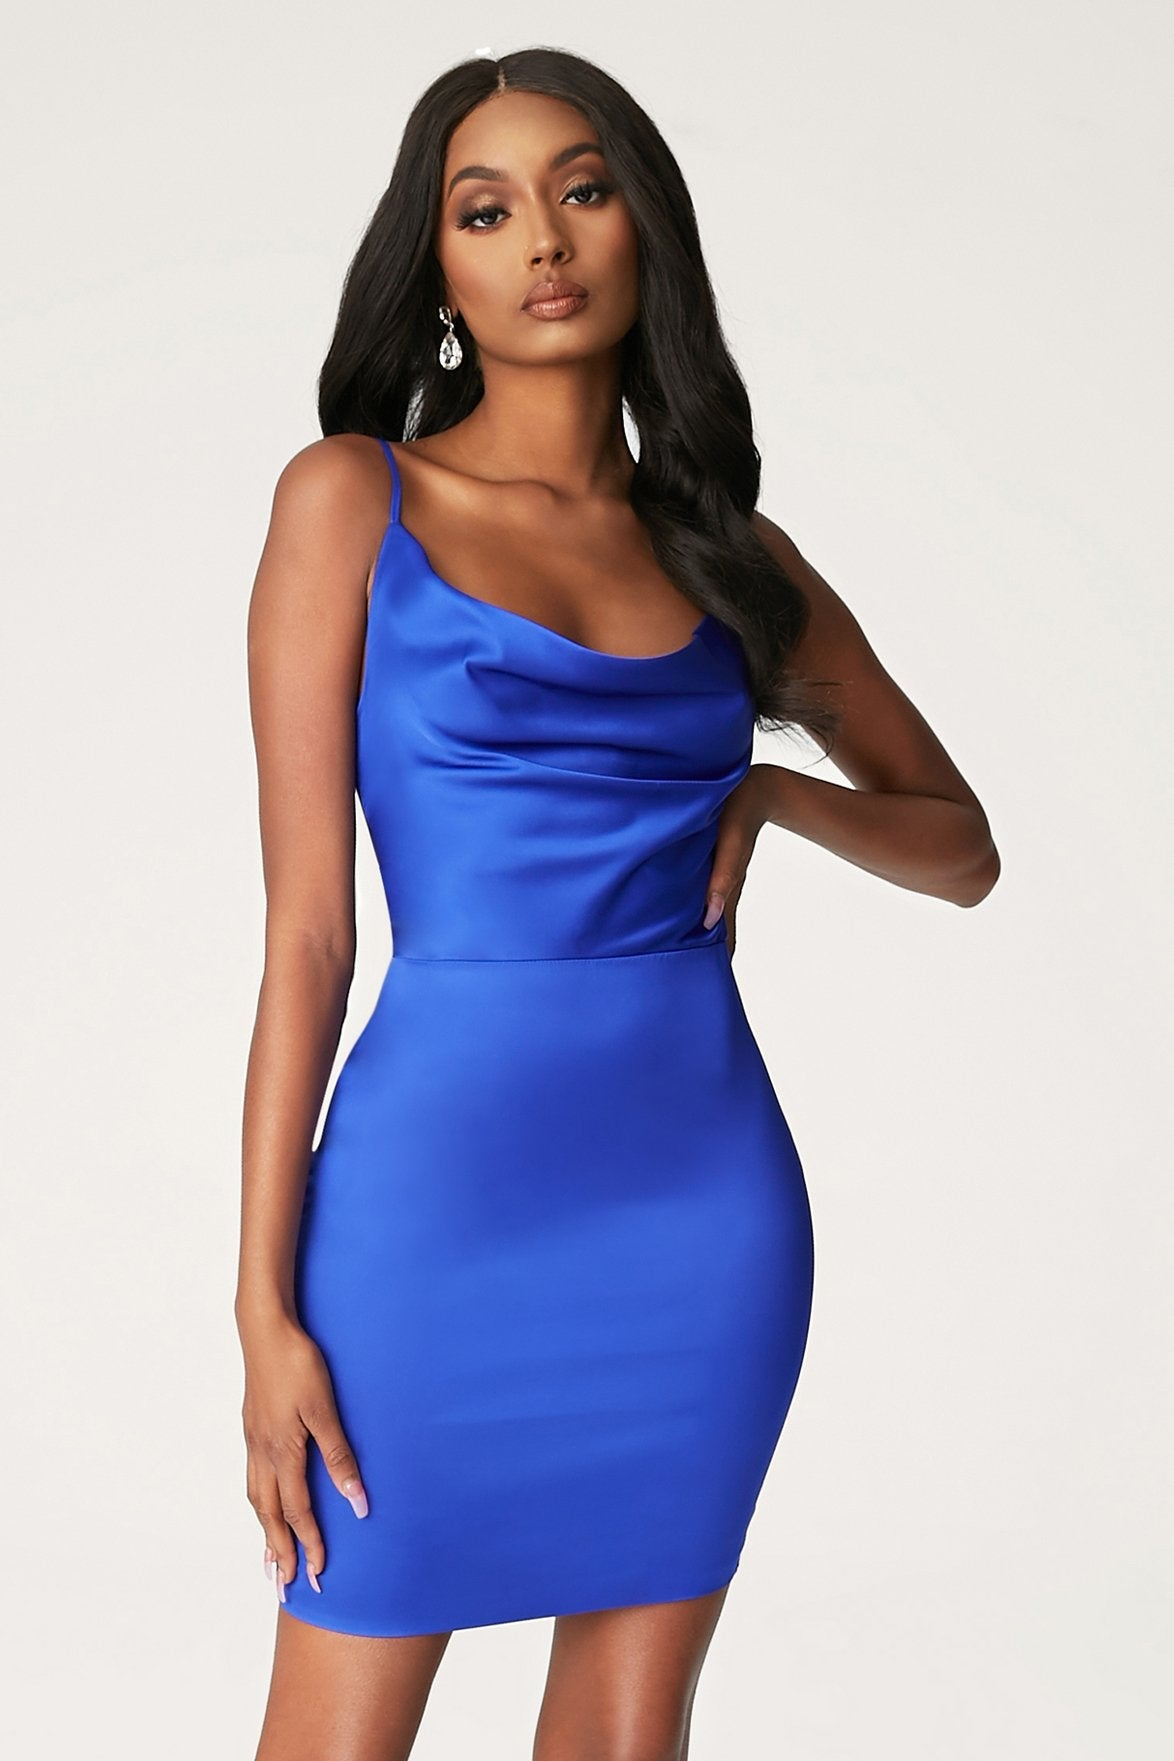 Zoey Cowl Neck Strappy Back Mini Dress - Bright Blue - MESHKI